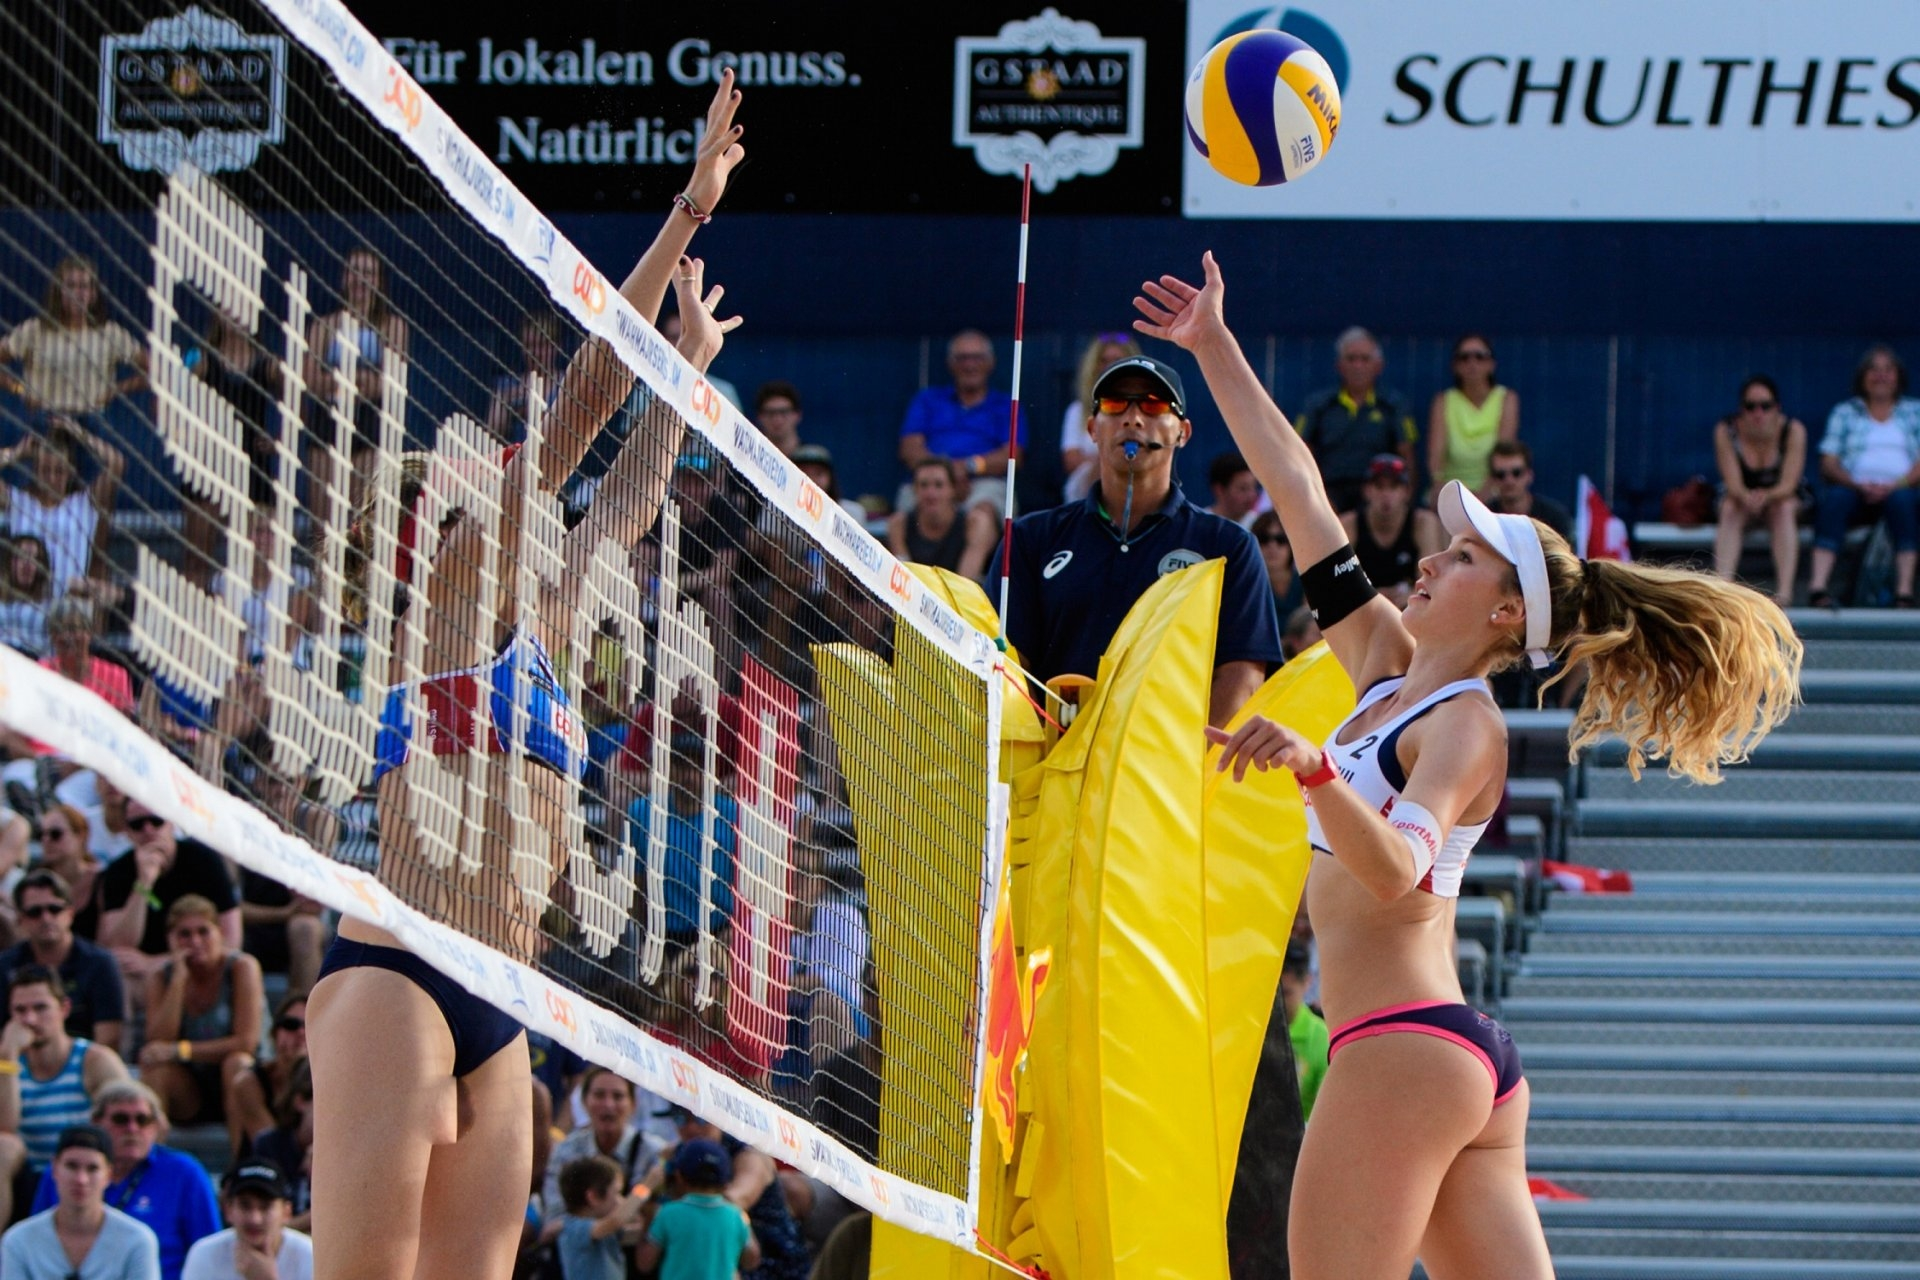 In 2017, the Swiss were eliminated by Americans Kerri Walsh Jennings and Nicole Branagh (Photocredit: FIVB)